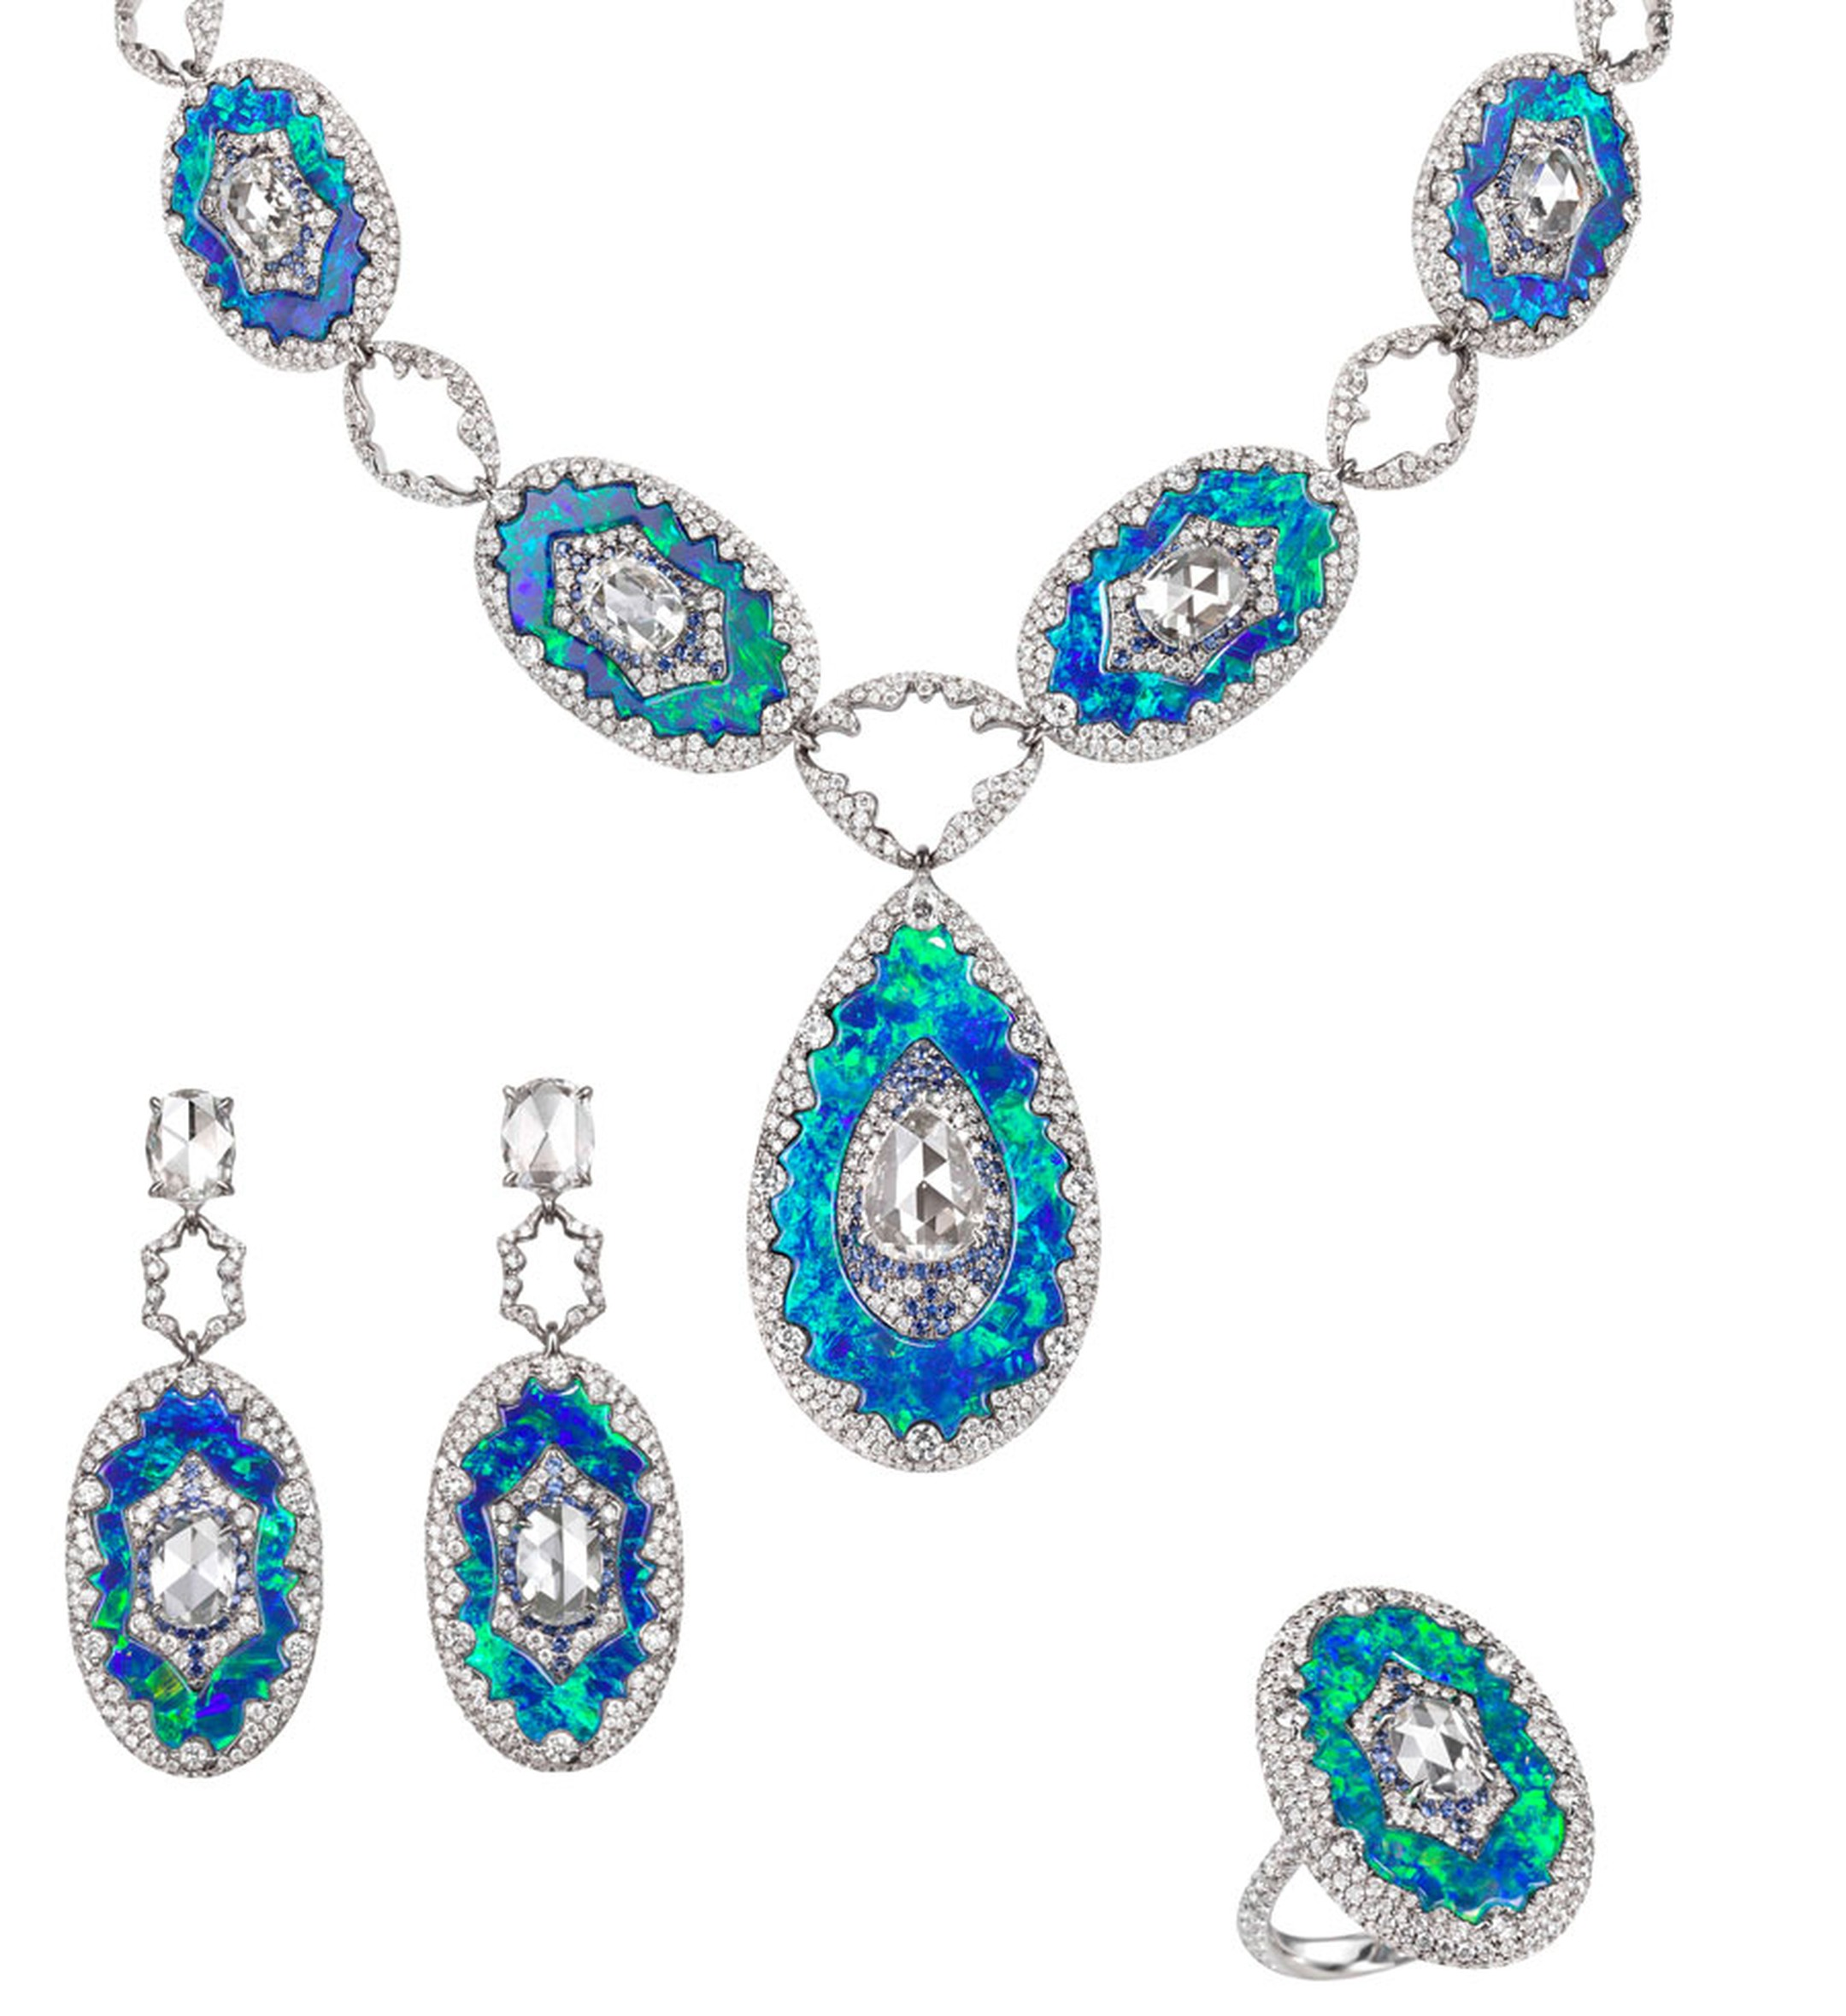 MPL-2013-BOGH-ART-diamond-inlaid-into-opal-set